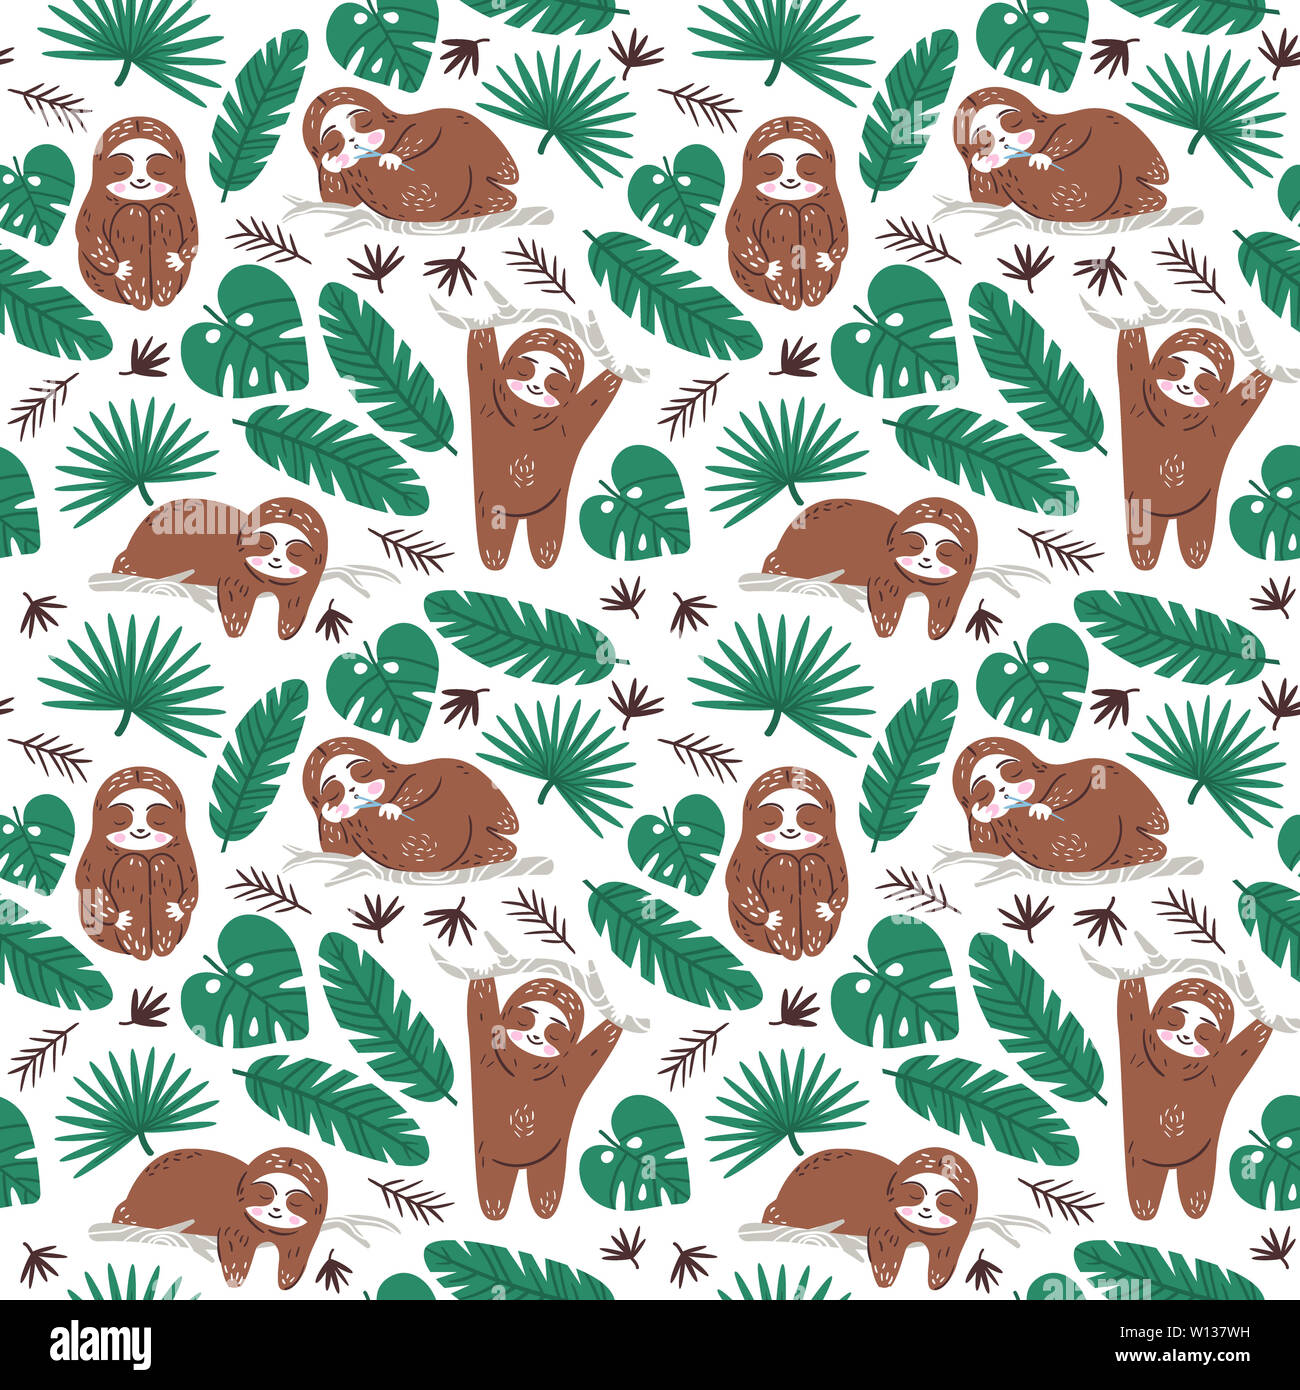 Lazy Cute Sloth Dreaming In Jungle Textile Seamless Vector Pattern Wallpaper Ornament For Nursery And Baby Gift Packing Cartoon Character Design Stock Photo Alamy